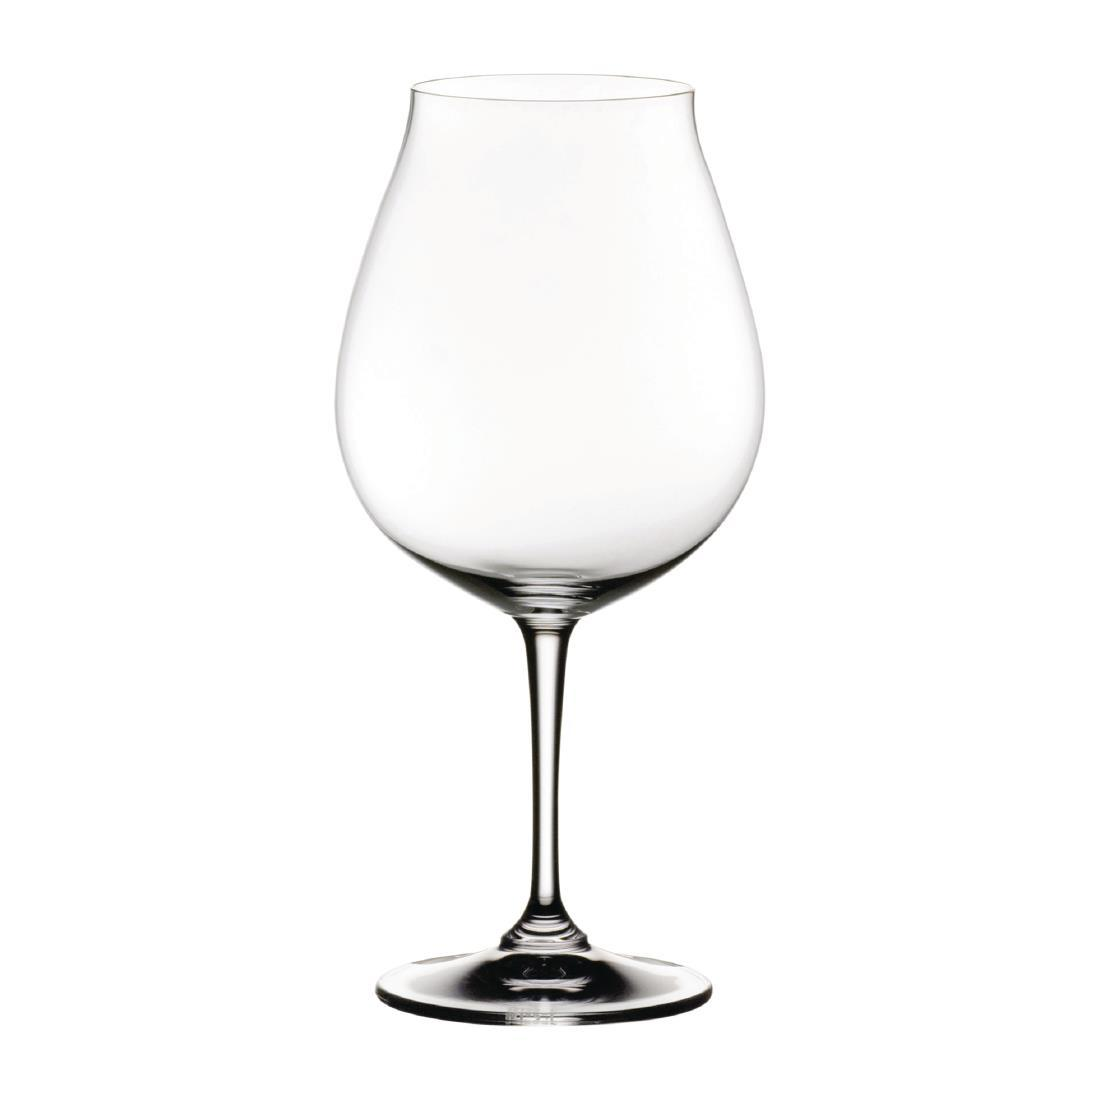 FB306 - Riedel Restaurant New World Pinot Noir Glasses 850ml / 30oz - Pack of 12 - FB306